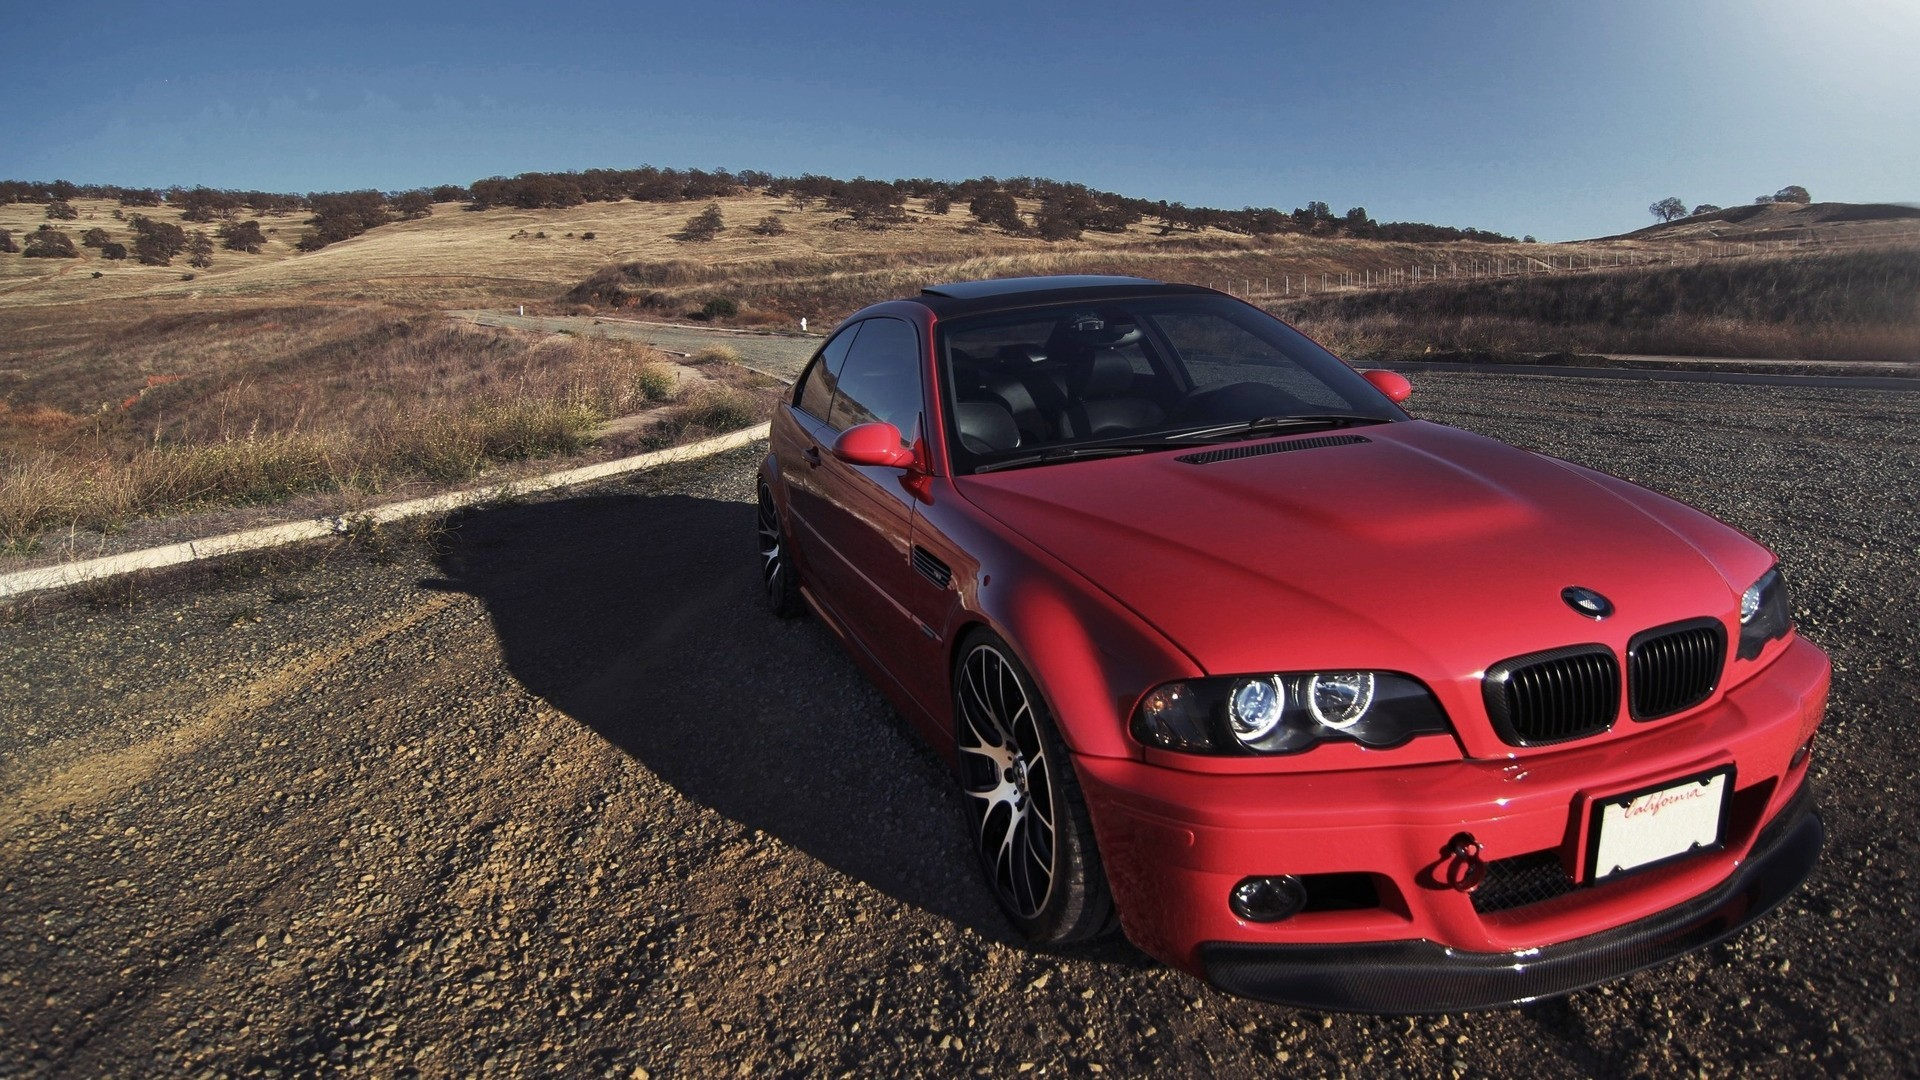 Download Bmw Cars Outdoors Vehicles M3 E46 Wallpaper Allwallpaper